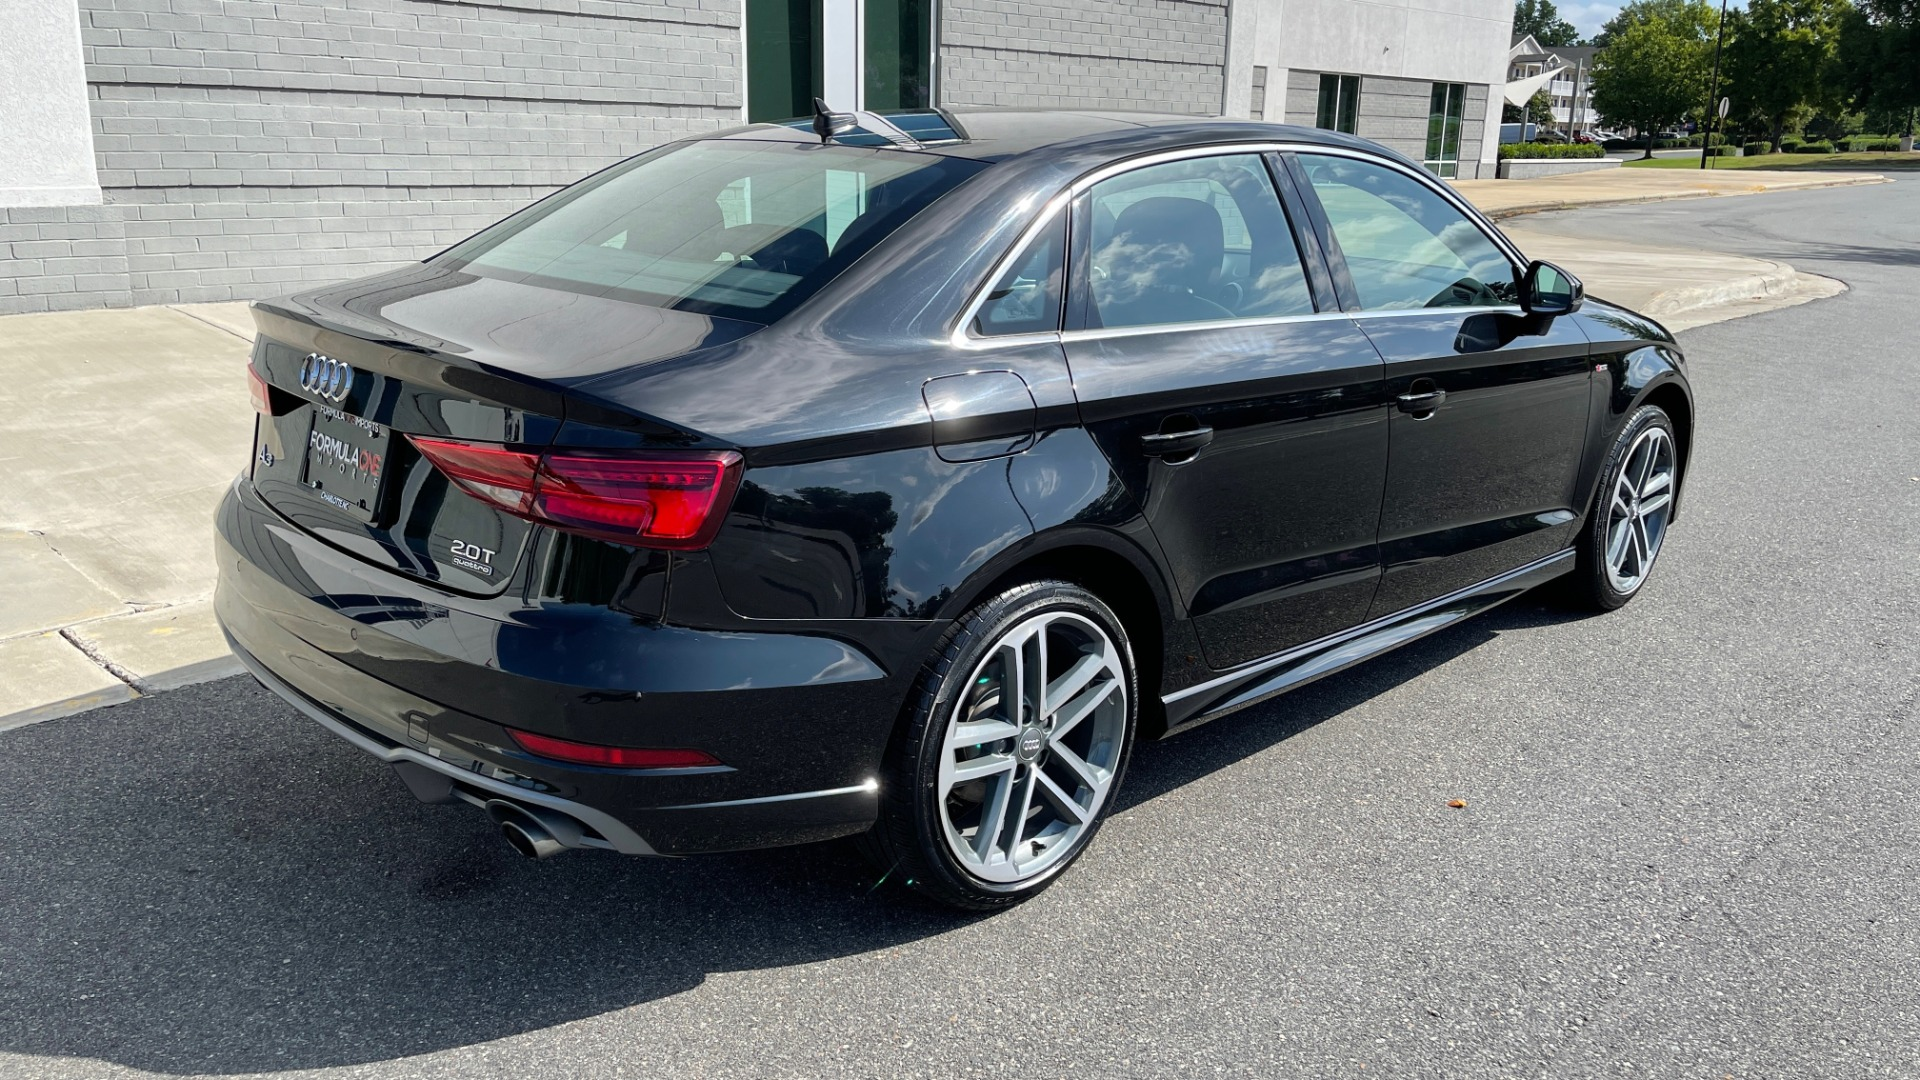 Used 2018 Audi A3 SEDAN PREMIUM PLUS / S-LINE / PANO-ROOF / PARK SYS / REARVIEW for sale $31,795 at Formula Imports in Charlotte NC 28227 2